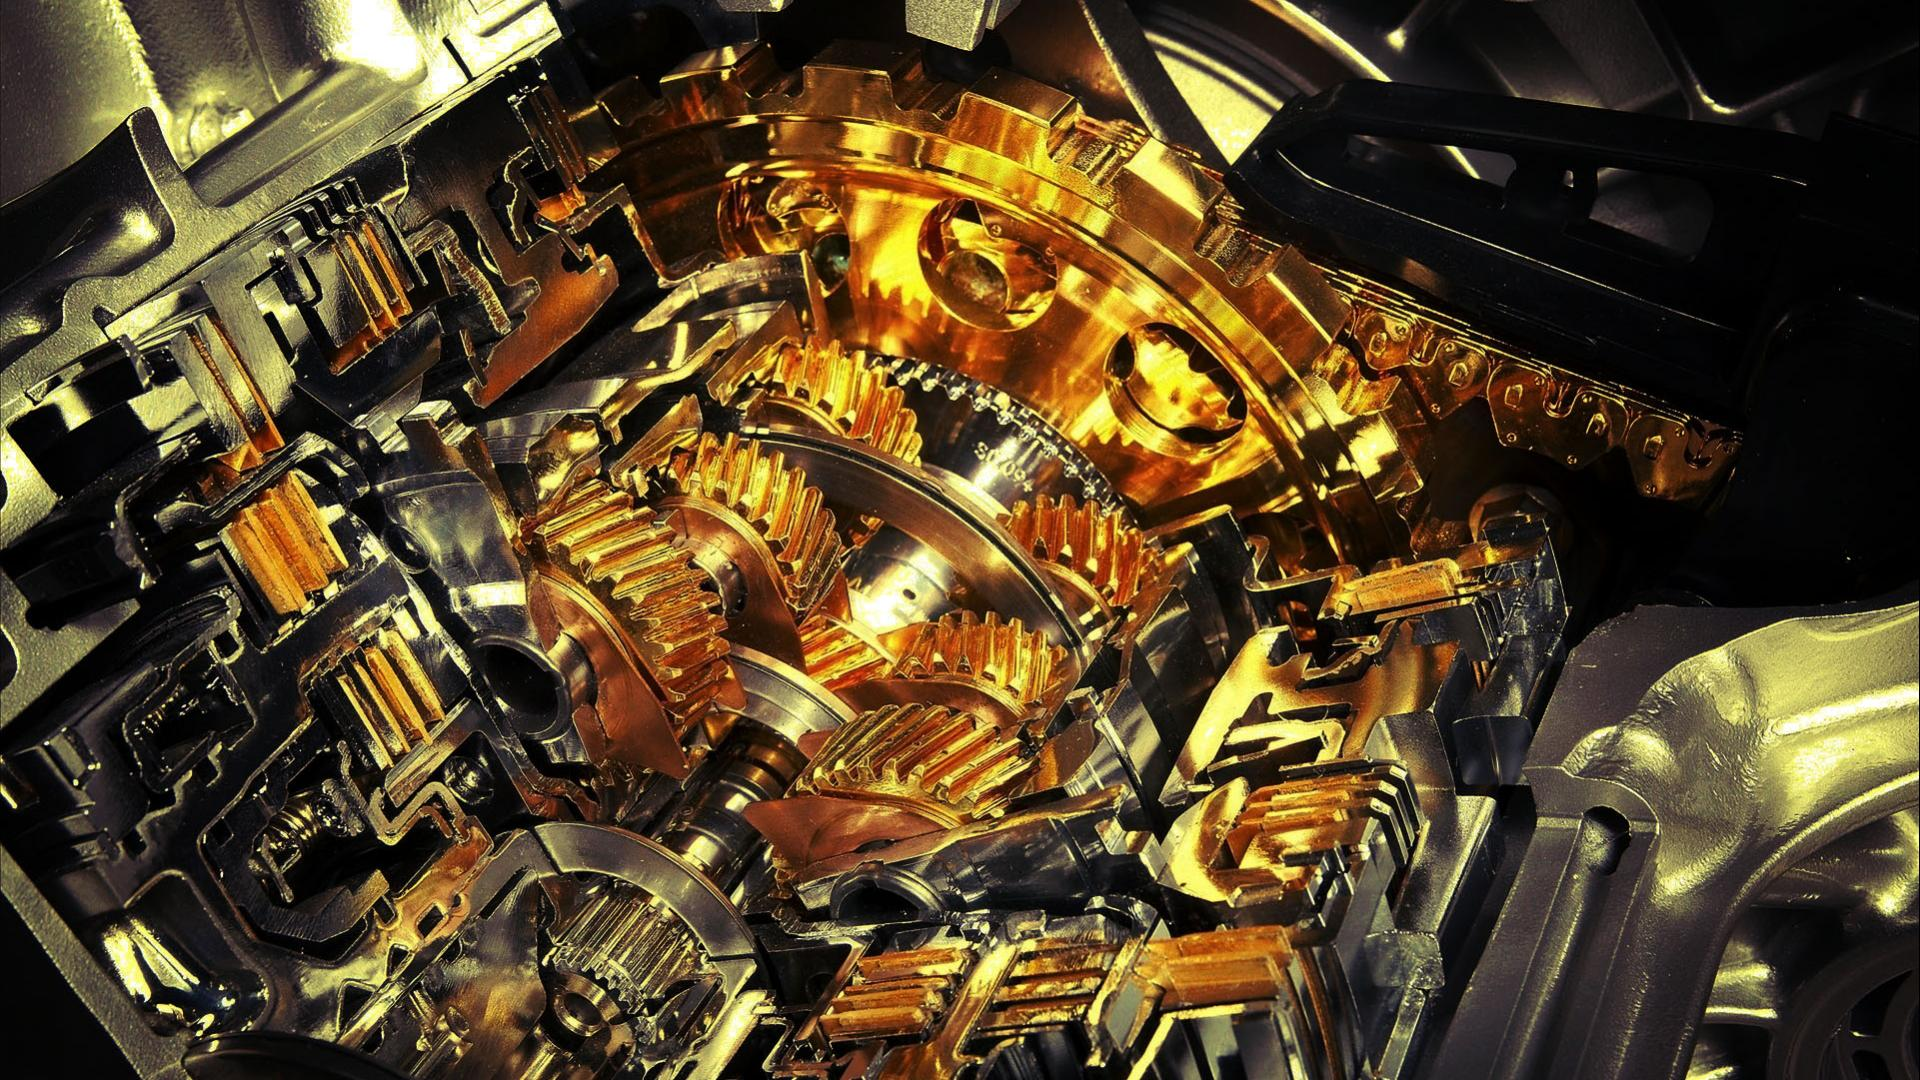 Engine_Machinery_Wallpaper-1920x1080